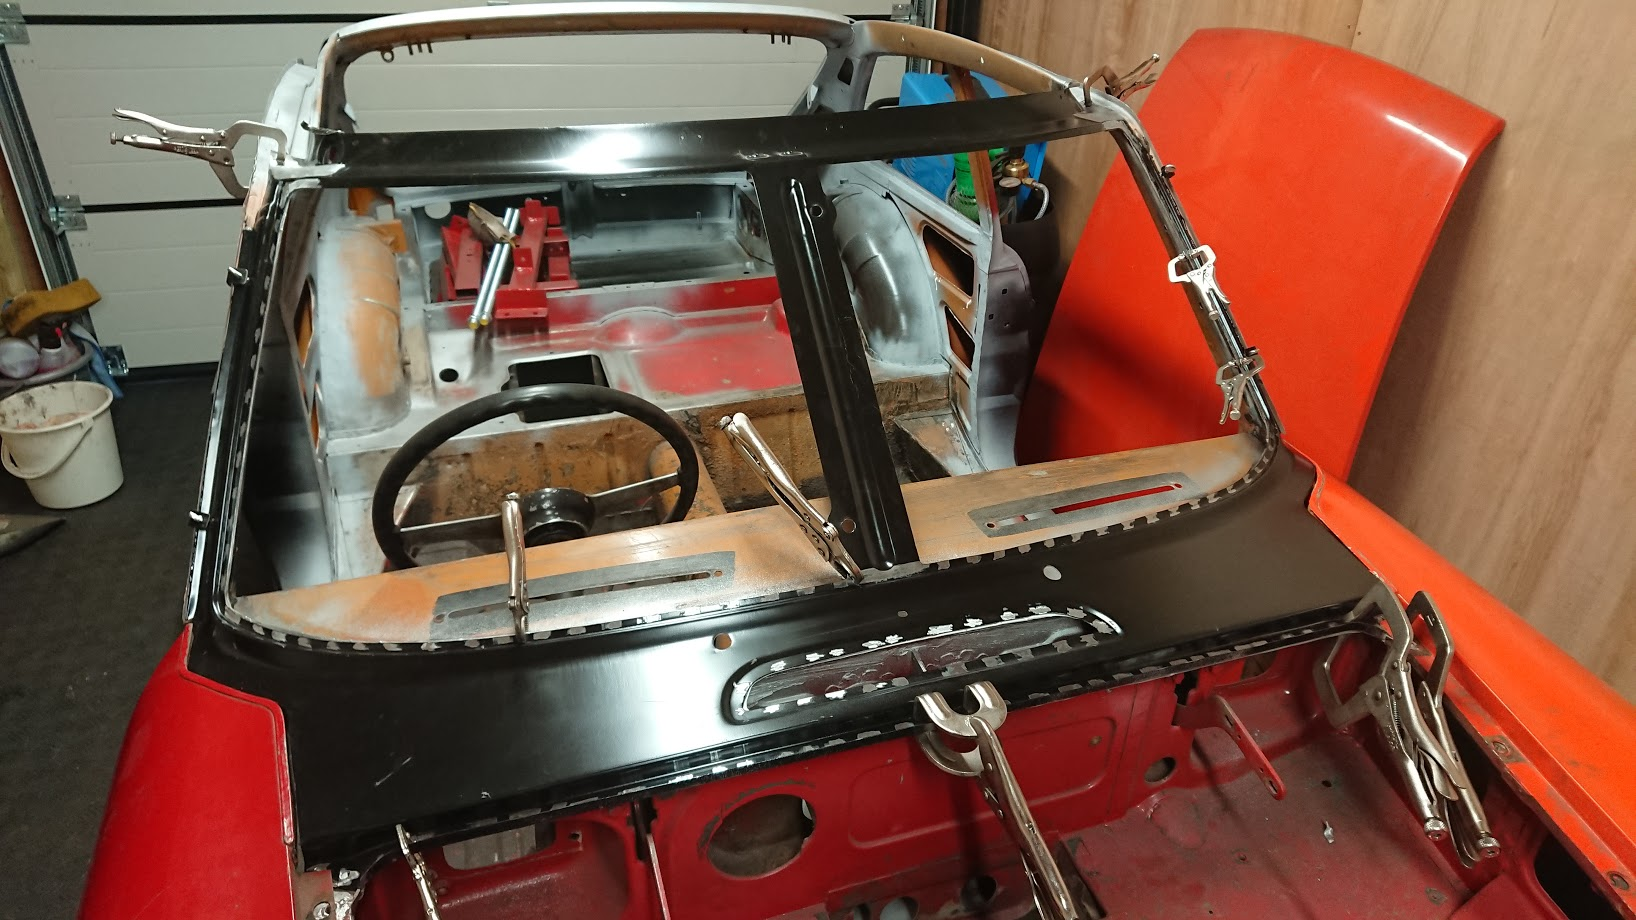 New windscreen frame/front scuttle fitting